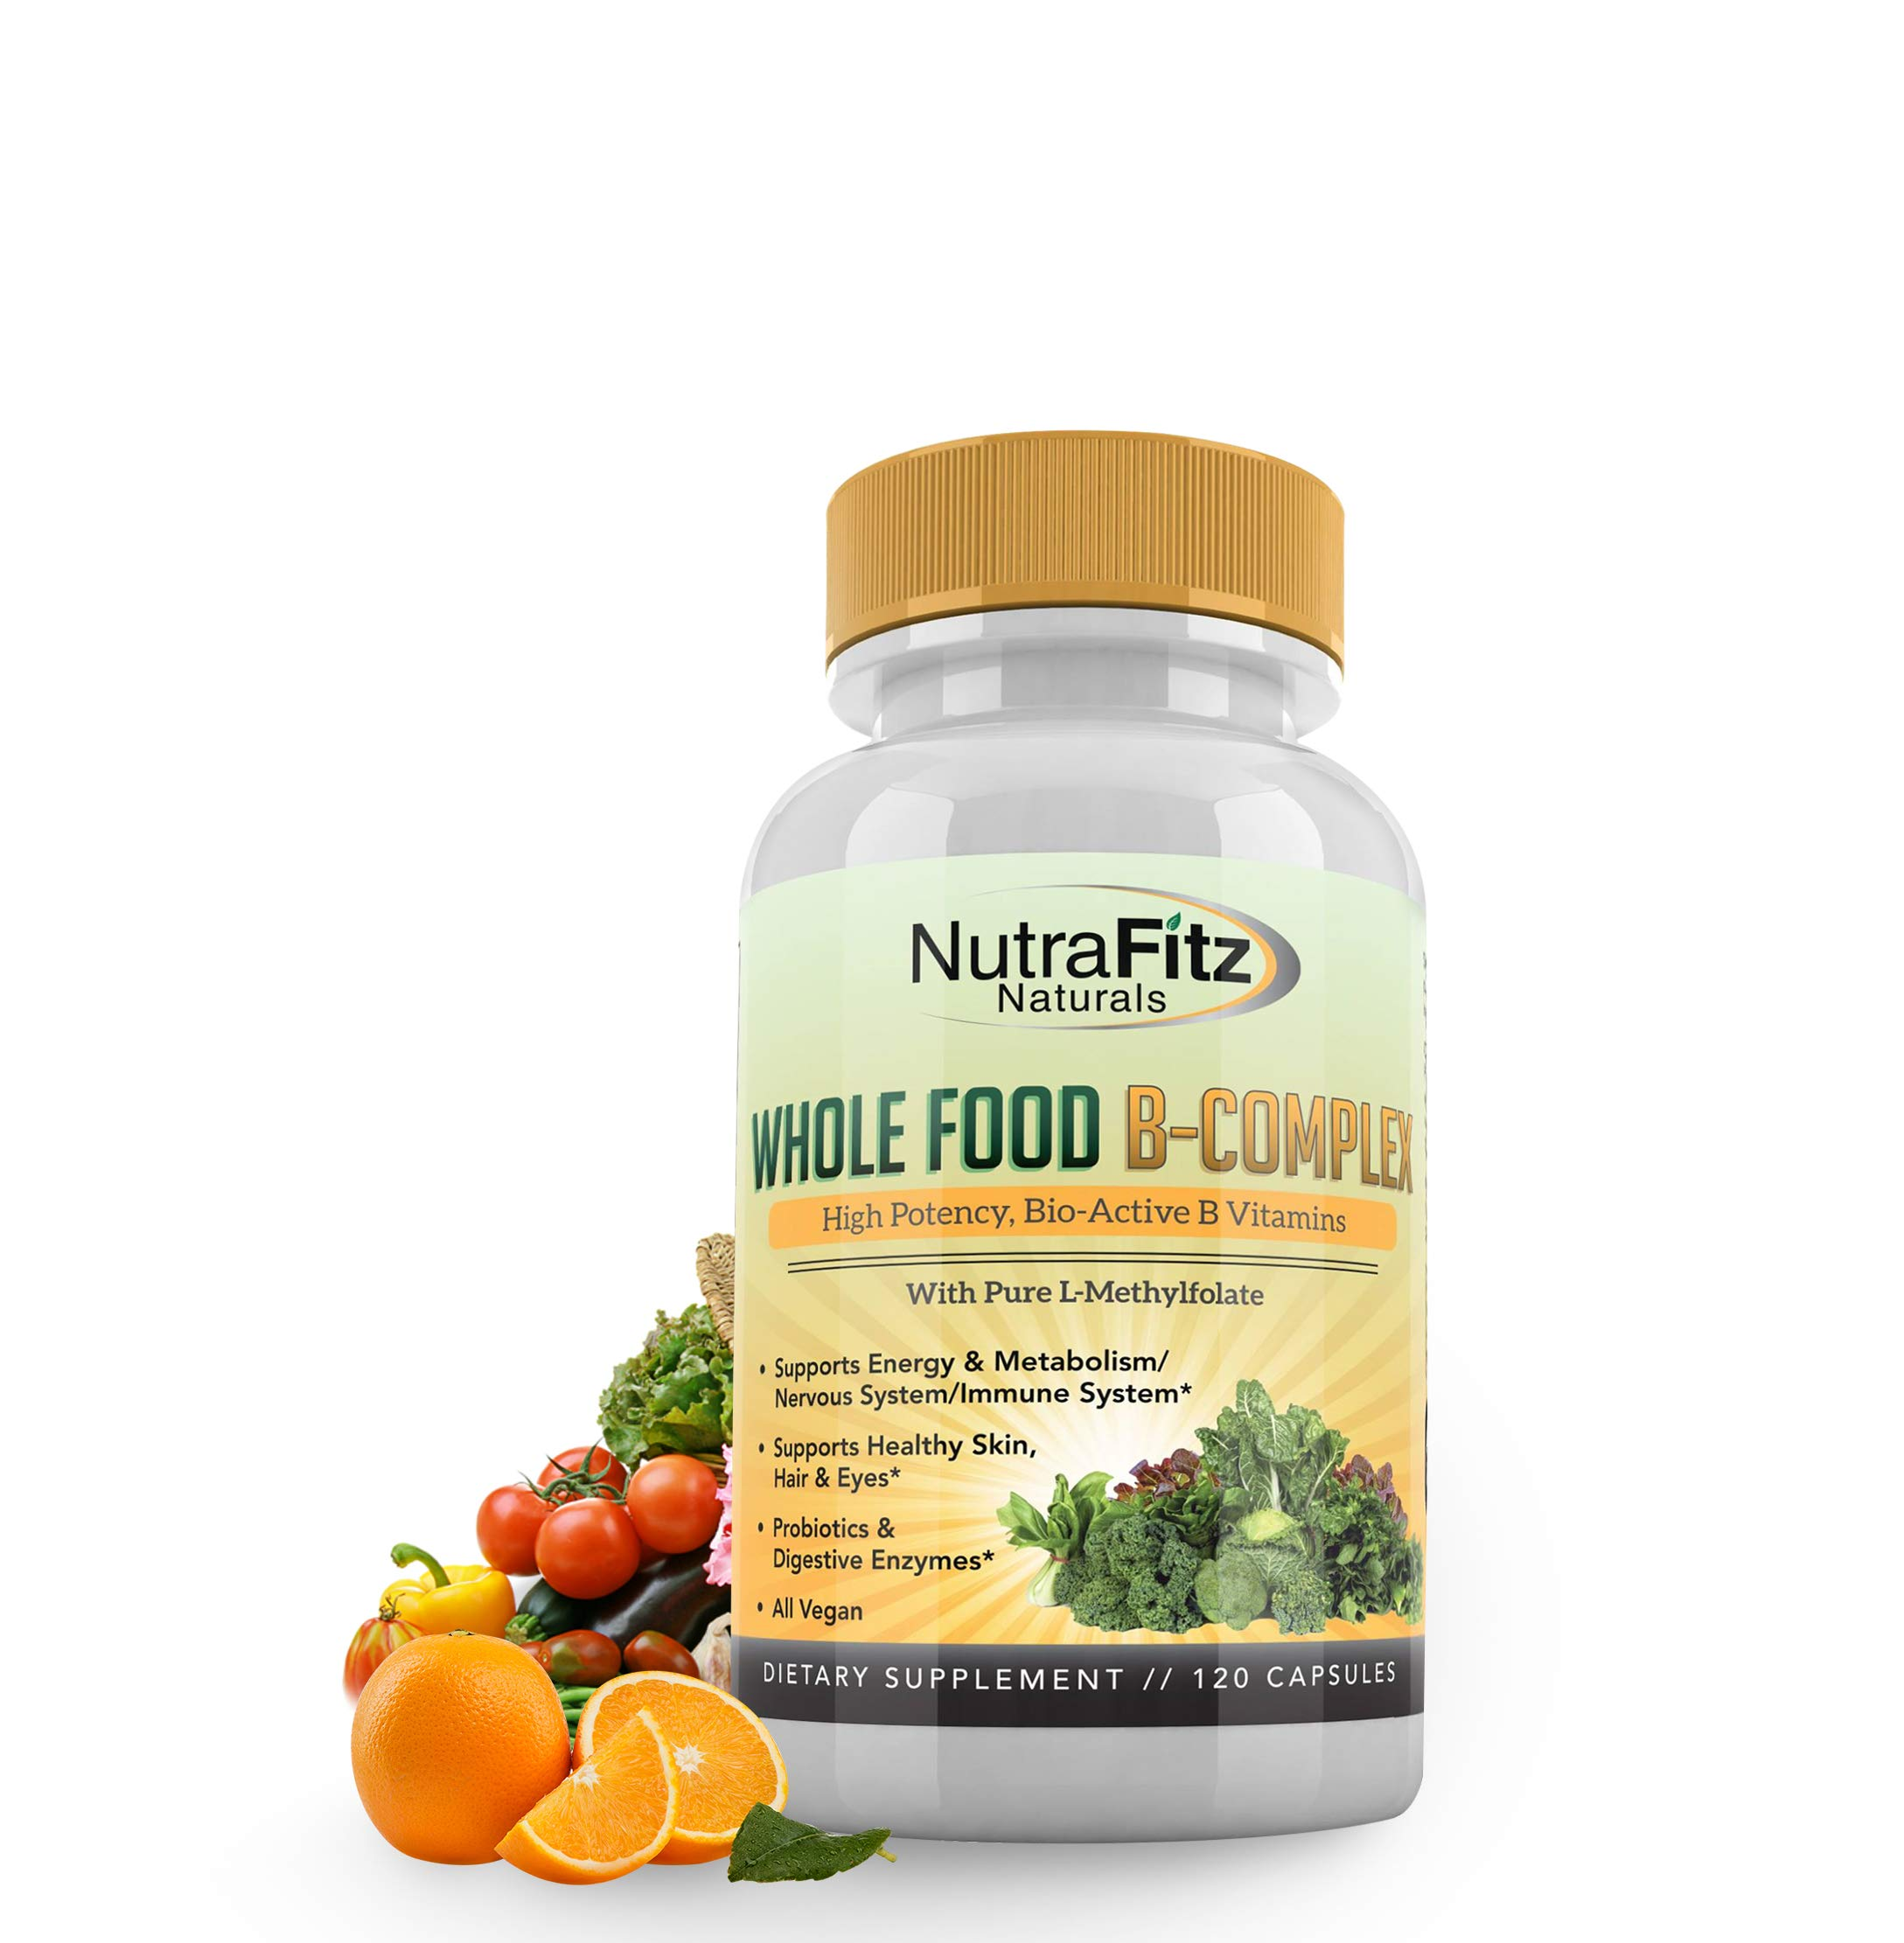 NutraFitz Naturals B Complex Vitamins - B Vitamins Whole Food Supplement, B12 Methylcobalamin, B1, B2, B3, B5, B6, B7, B9 - For Stress, Energy and Immune Support, Vegan, 120 Capsules by NutraFitz Naturals